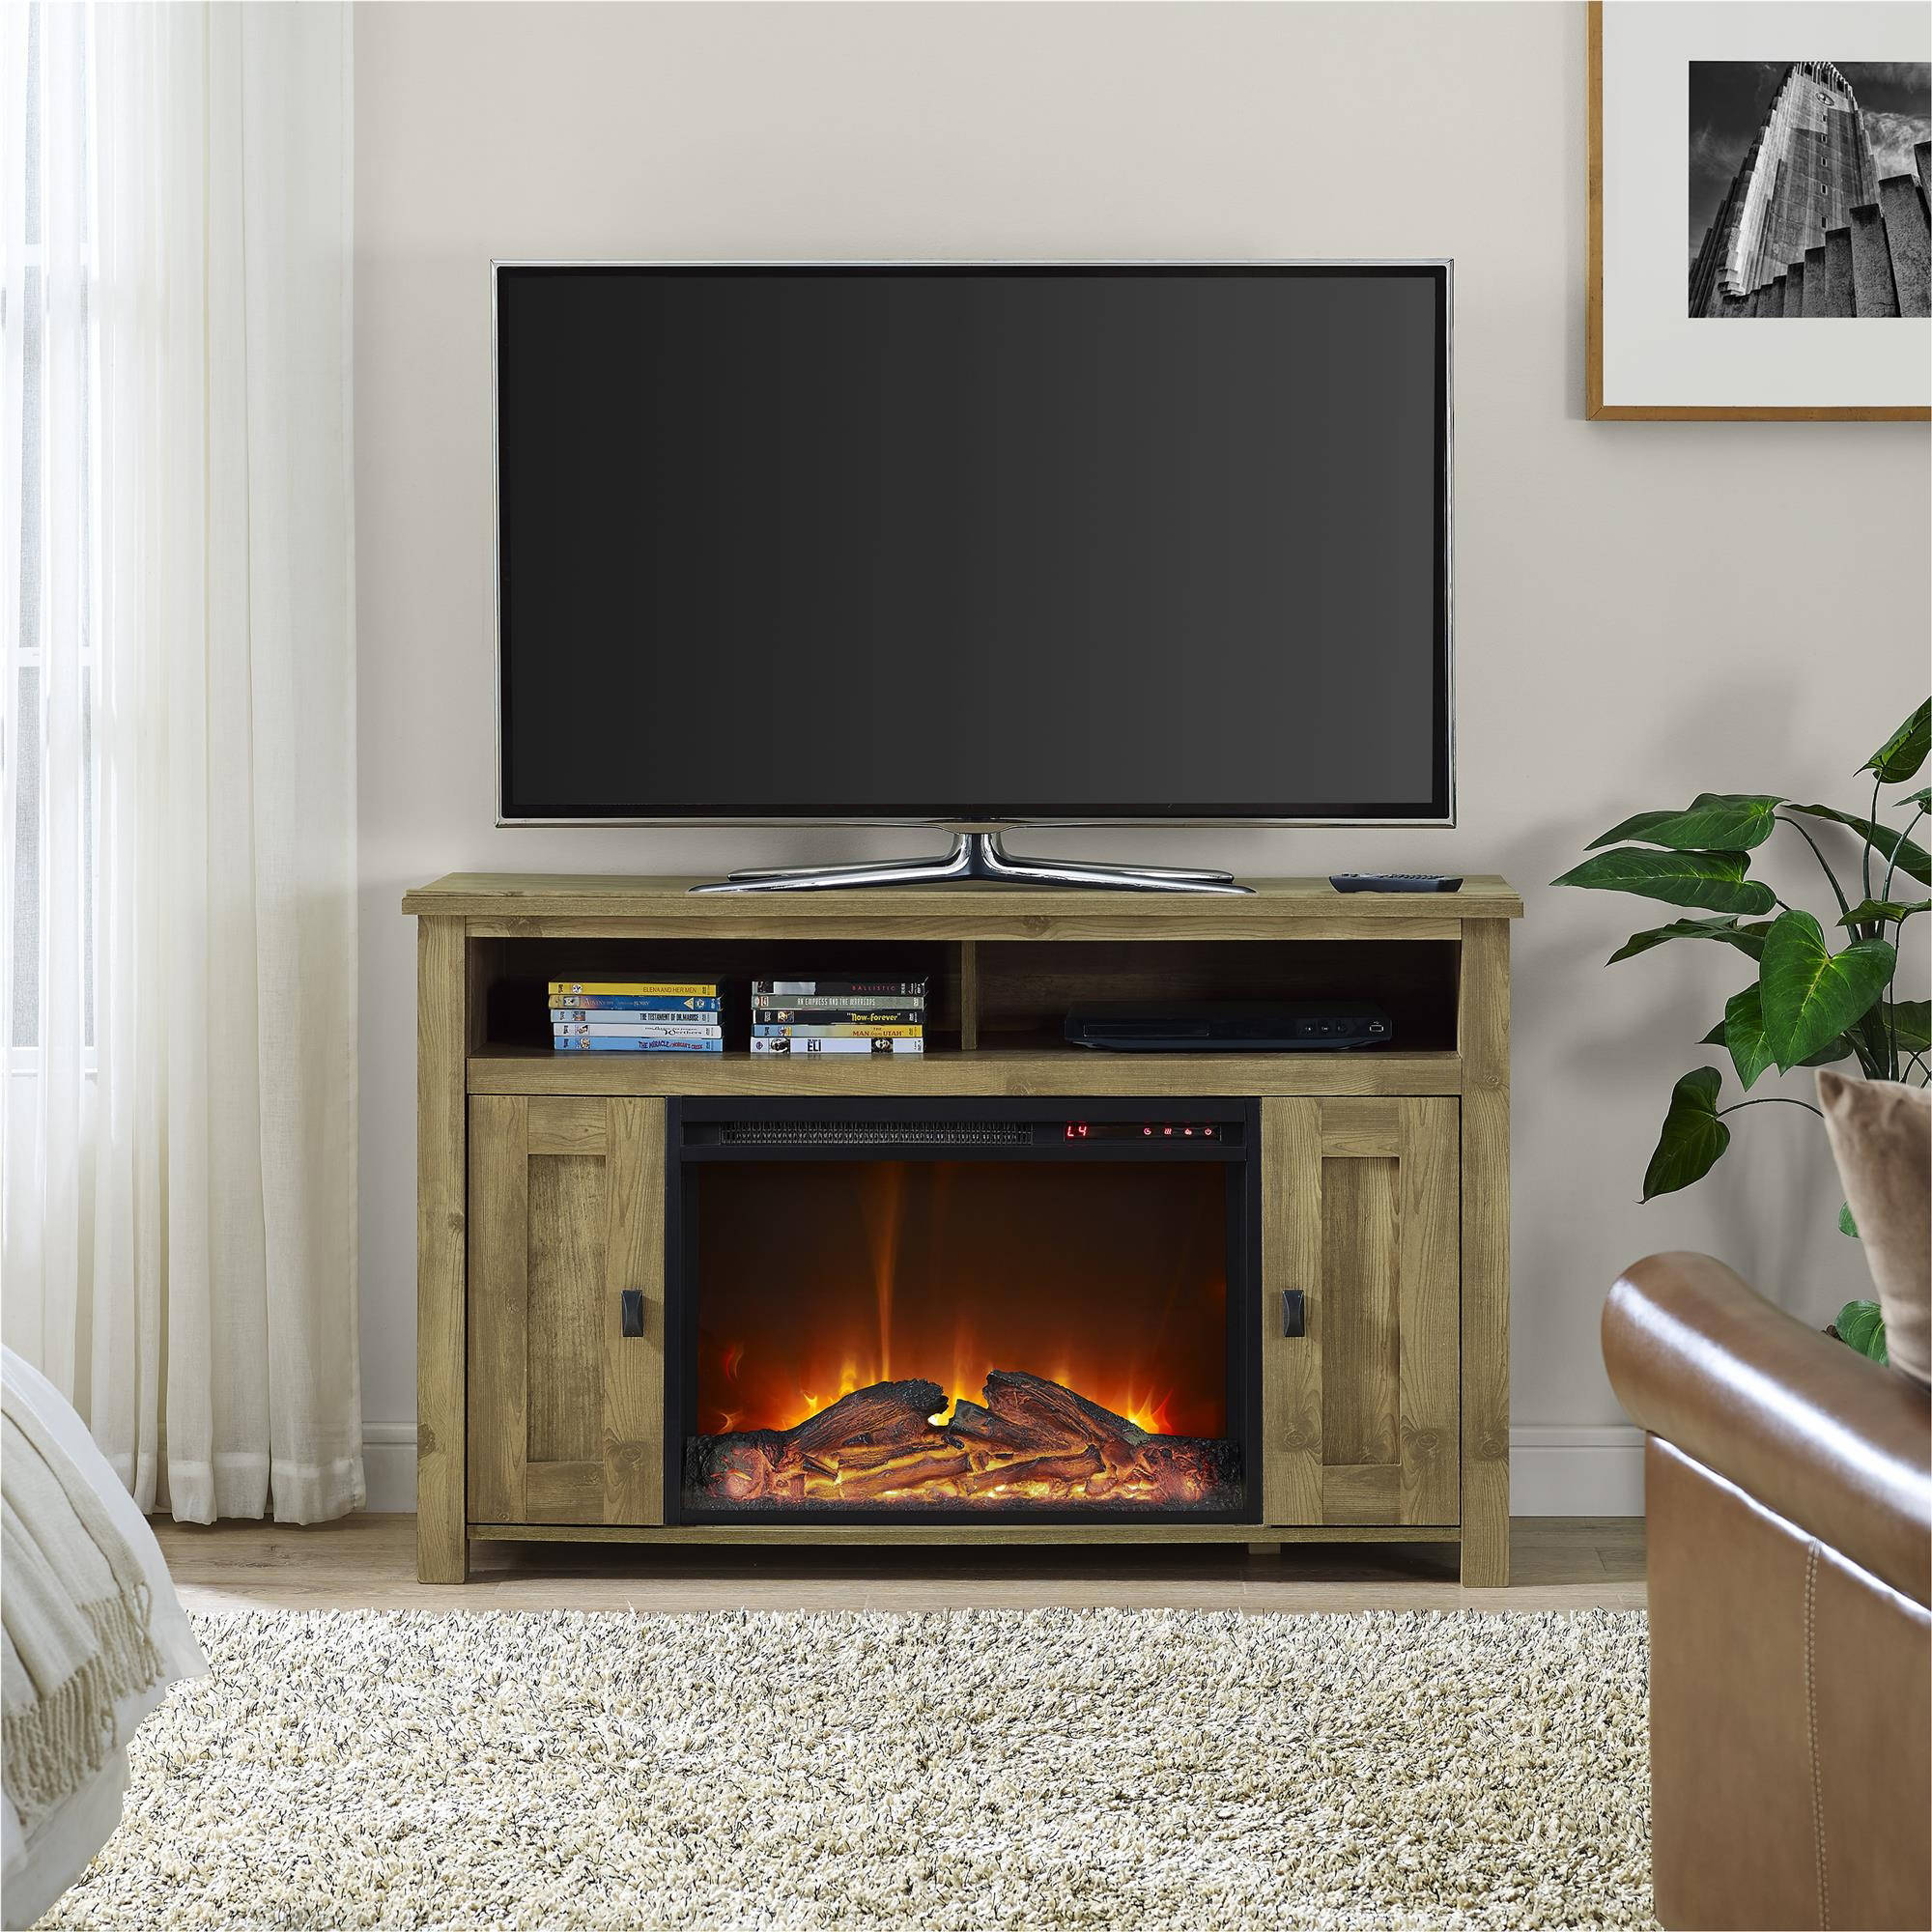 50 inch tv stand with fireplace media console electric entertainment center sale ebay. Black Bedroom Furniture Sets. Home Design Ideas